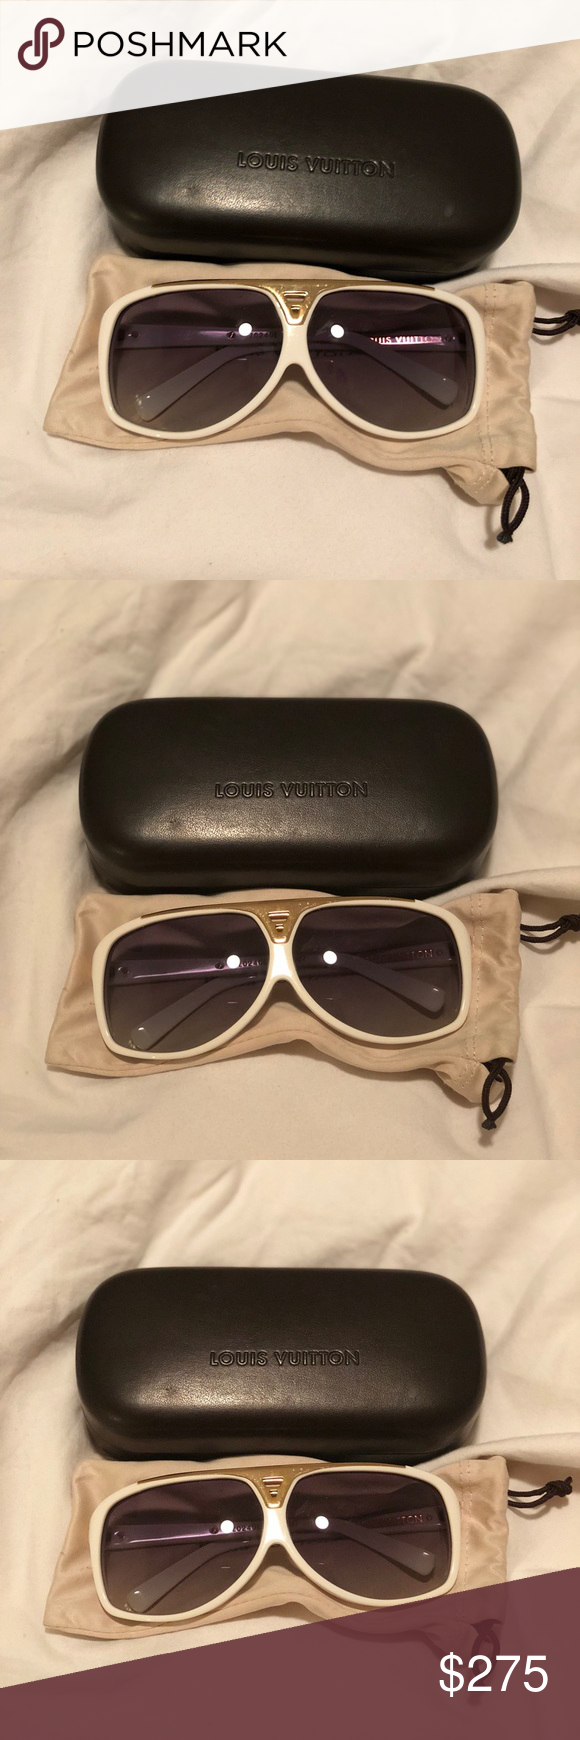 7ac3c83db8 Authentic Louis Vuitton Sunglasses Evidence Authentic Louis Vuitton  Sunglasses Evidence white in good used condition. Very light scratches.